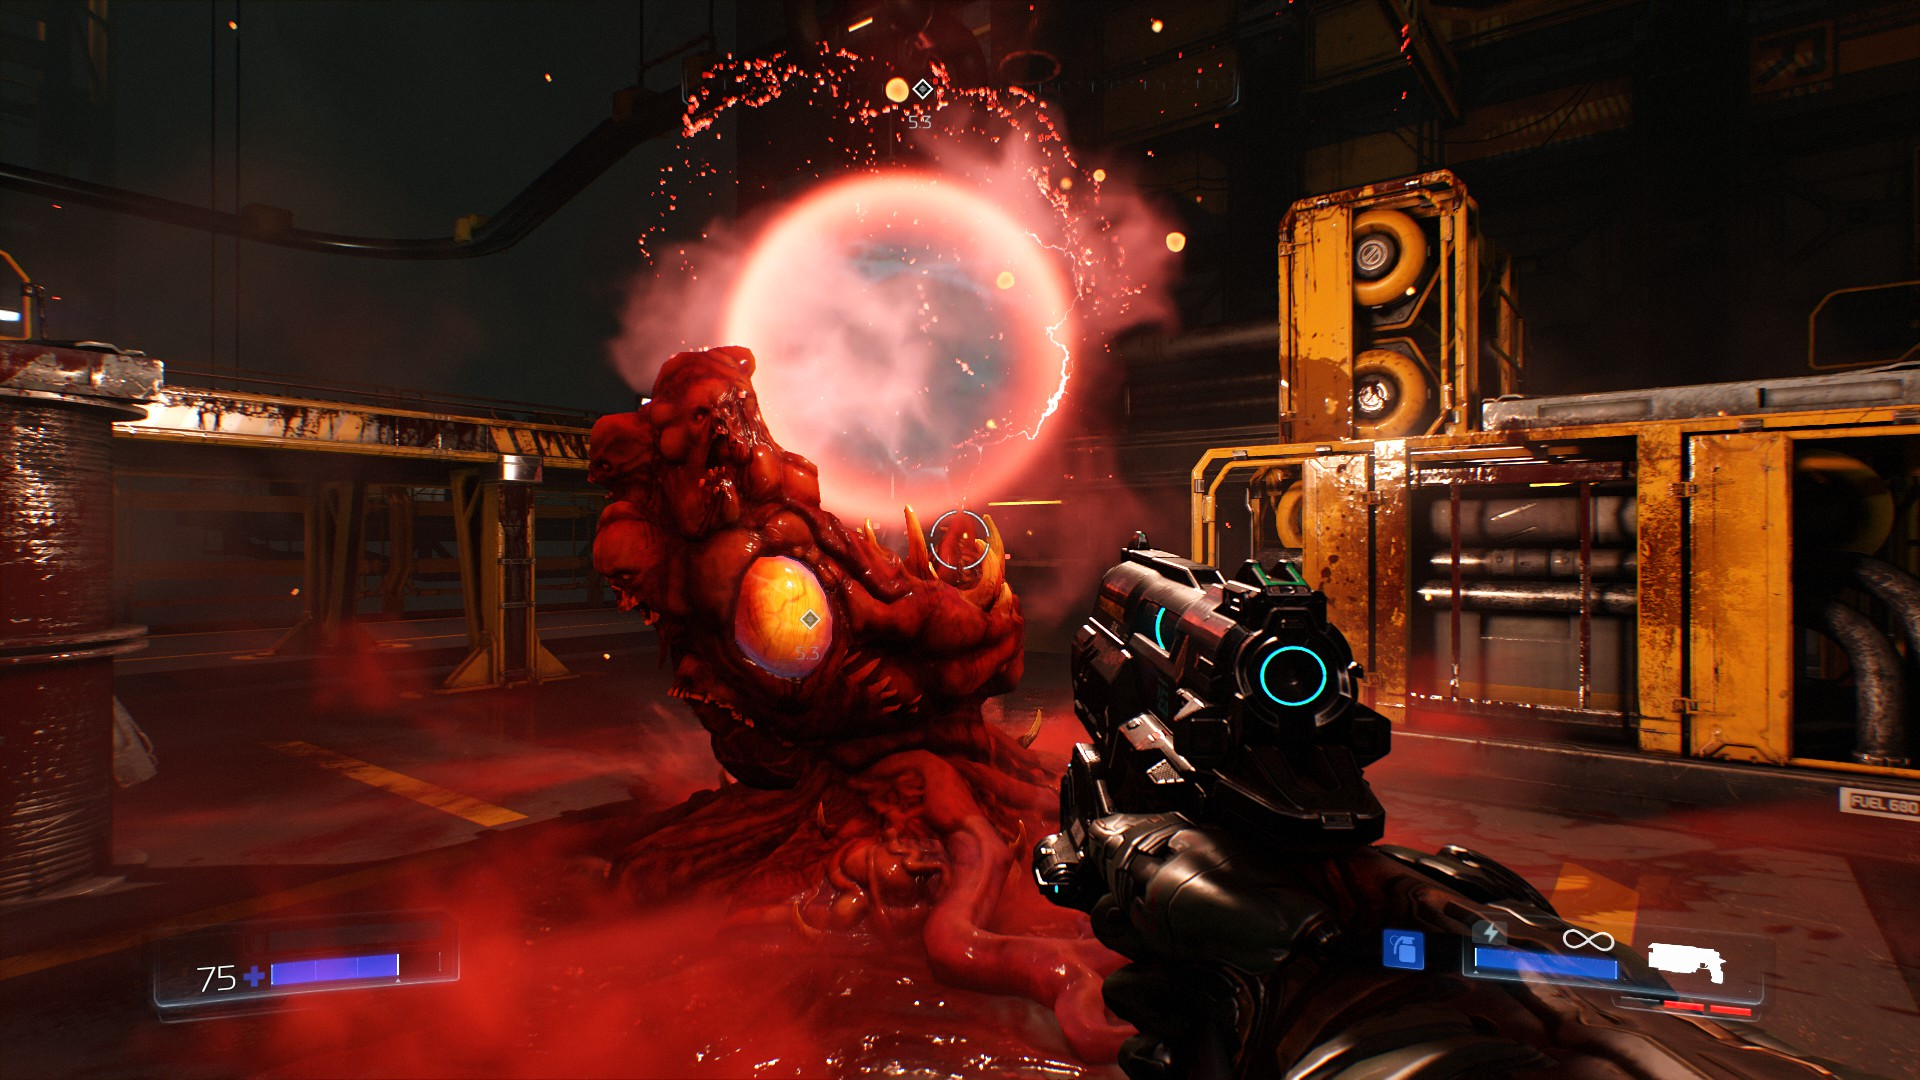 DOOM: Impressions and Reflections After Two Hours   The